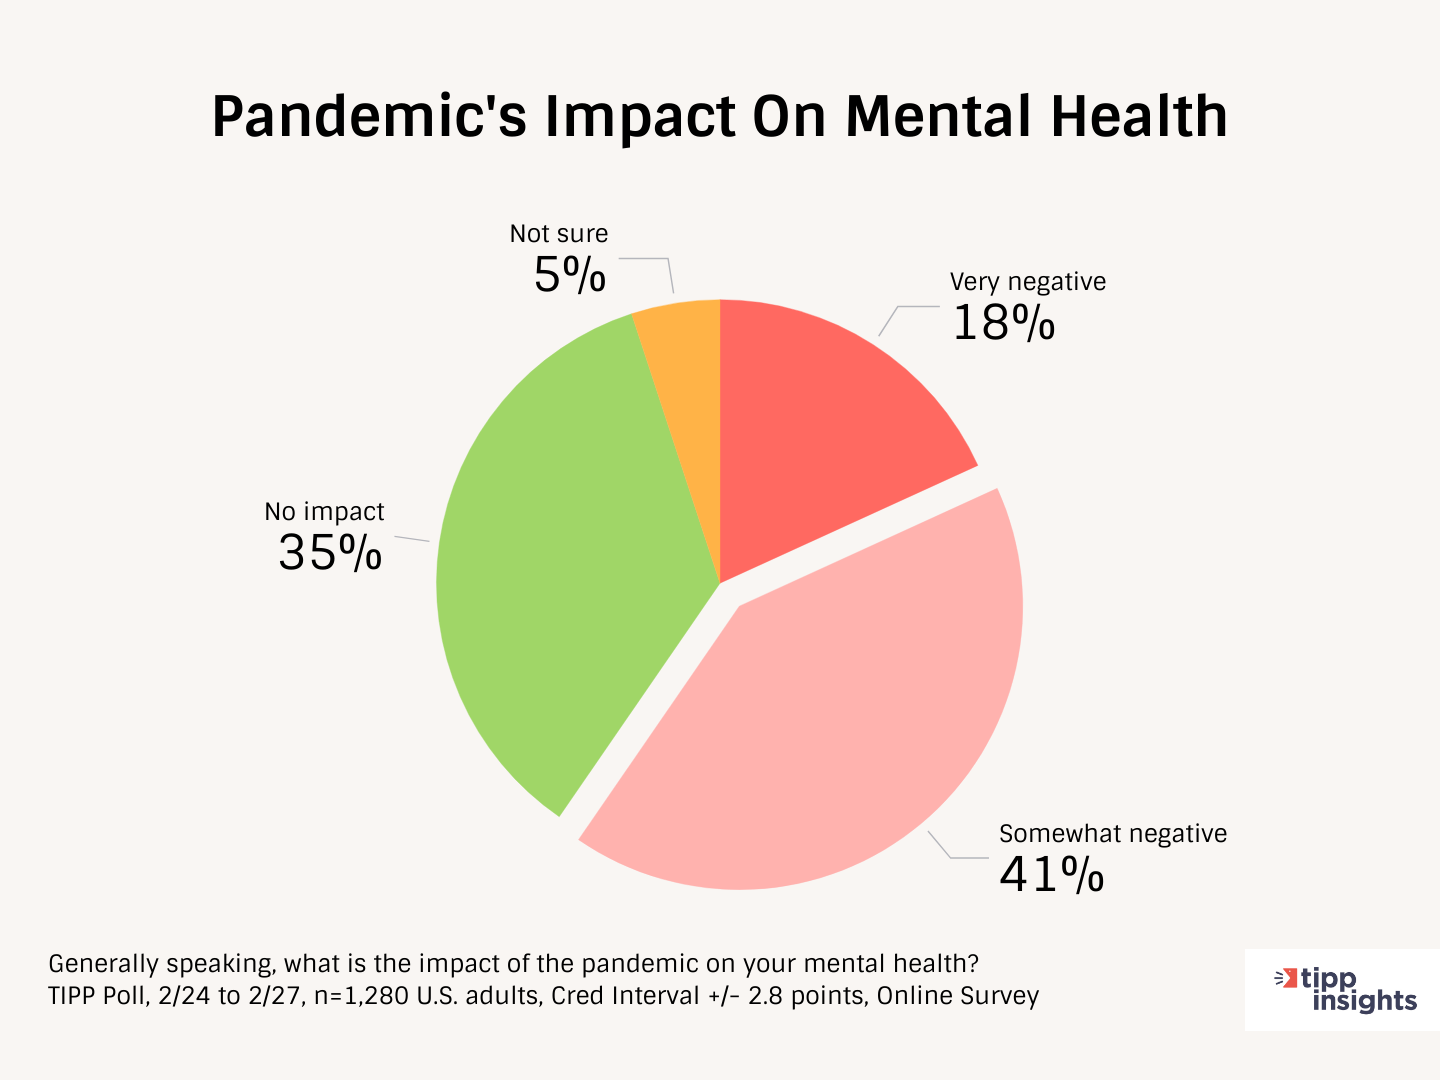 TIPP Poll Result, Pandemic Impact On American's Mental Health - Chart